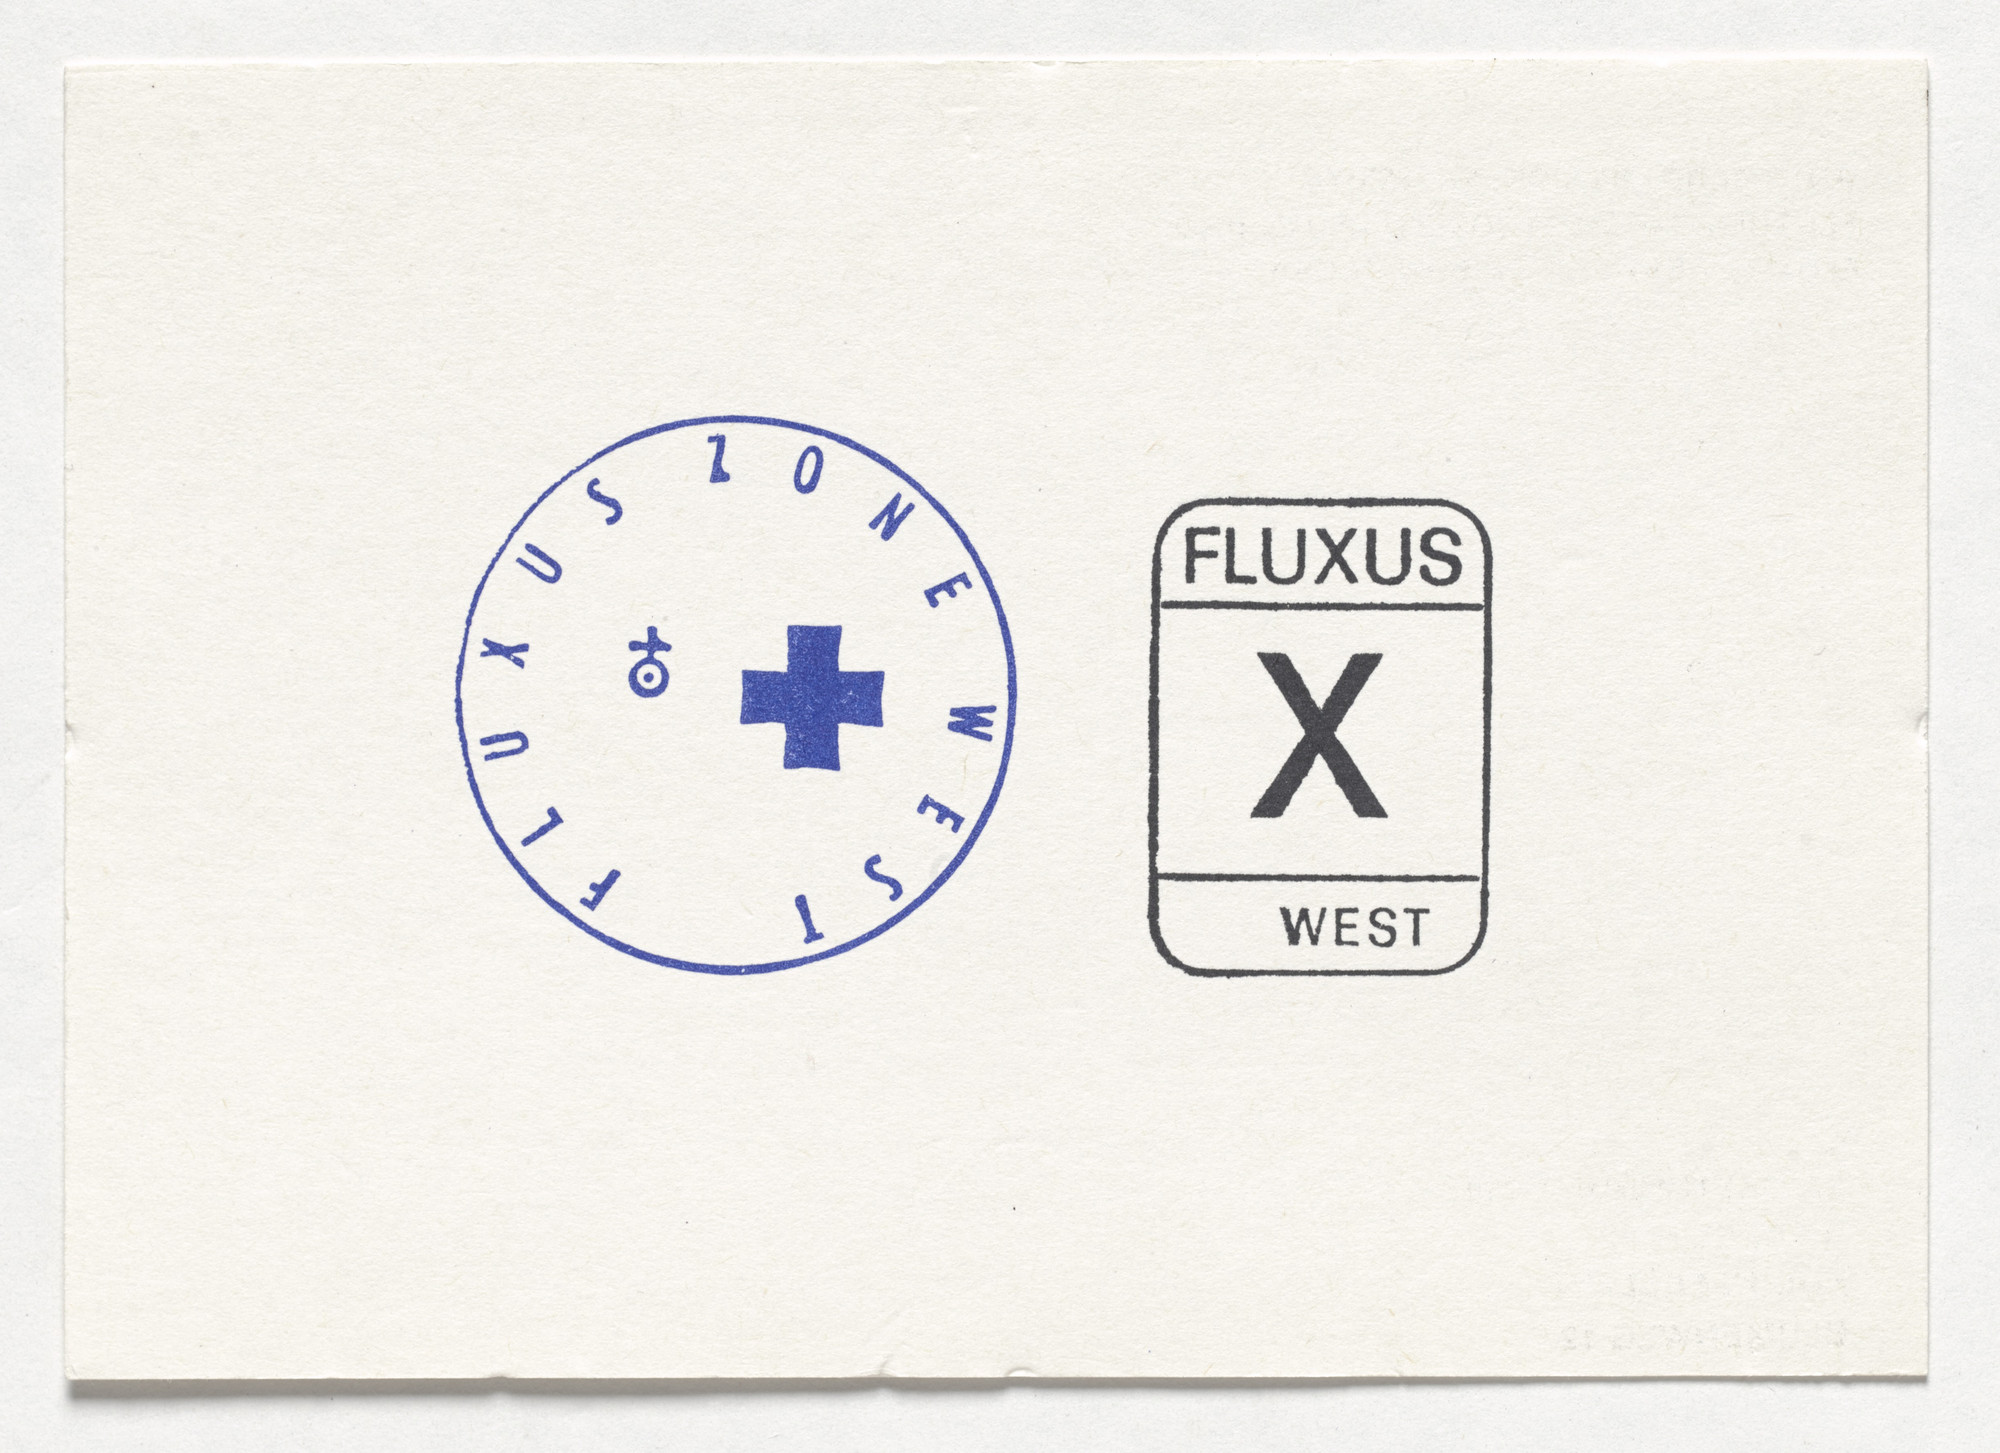 Joseph Beuys, Ken Friedman. Fluxus Zone West / Fluxus West. 1971